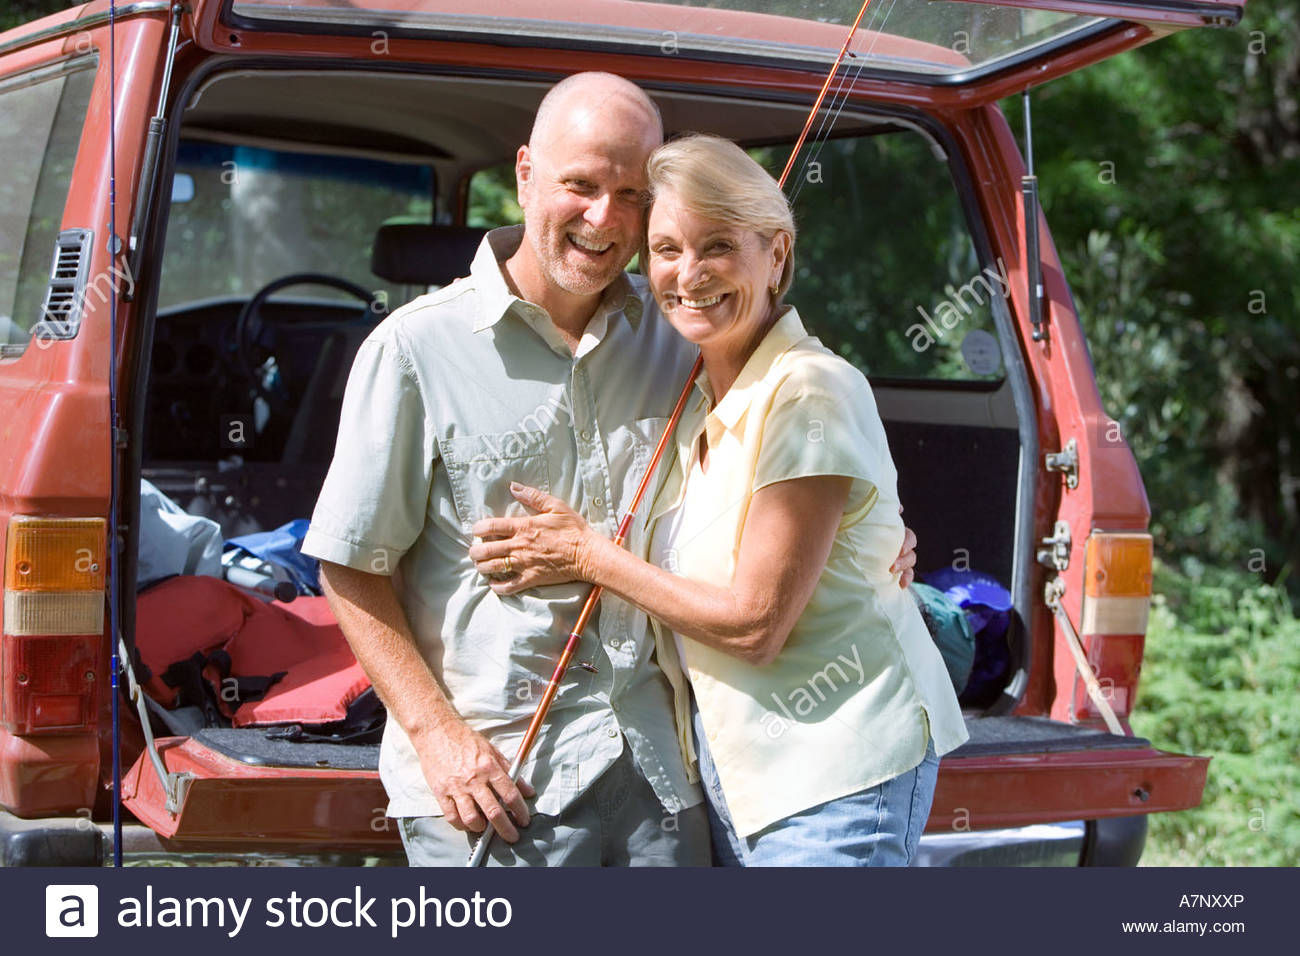 Senior couple standing beside parked SUV arms around each other man with fishing rod smiling portrait - Stock Image